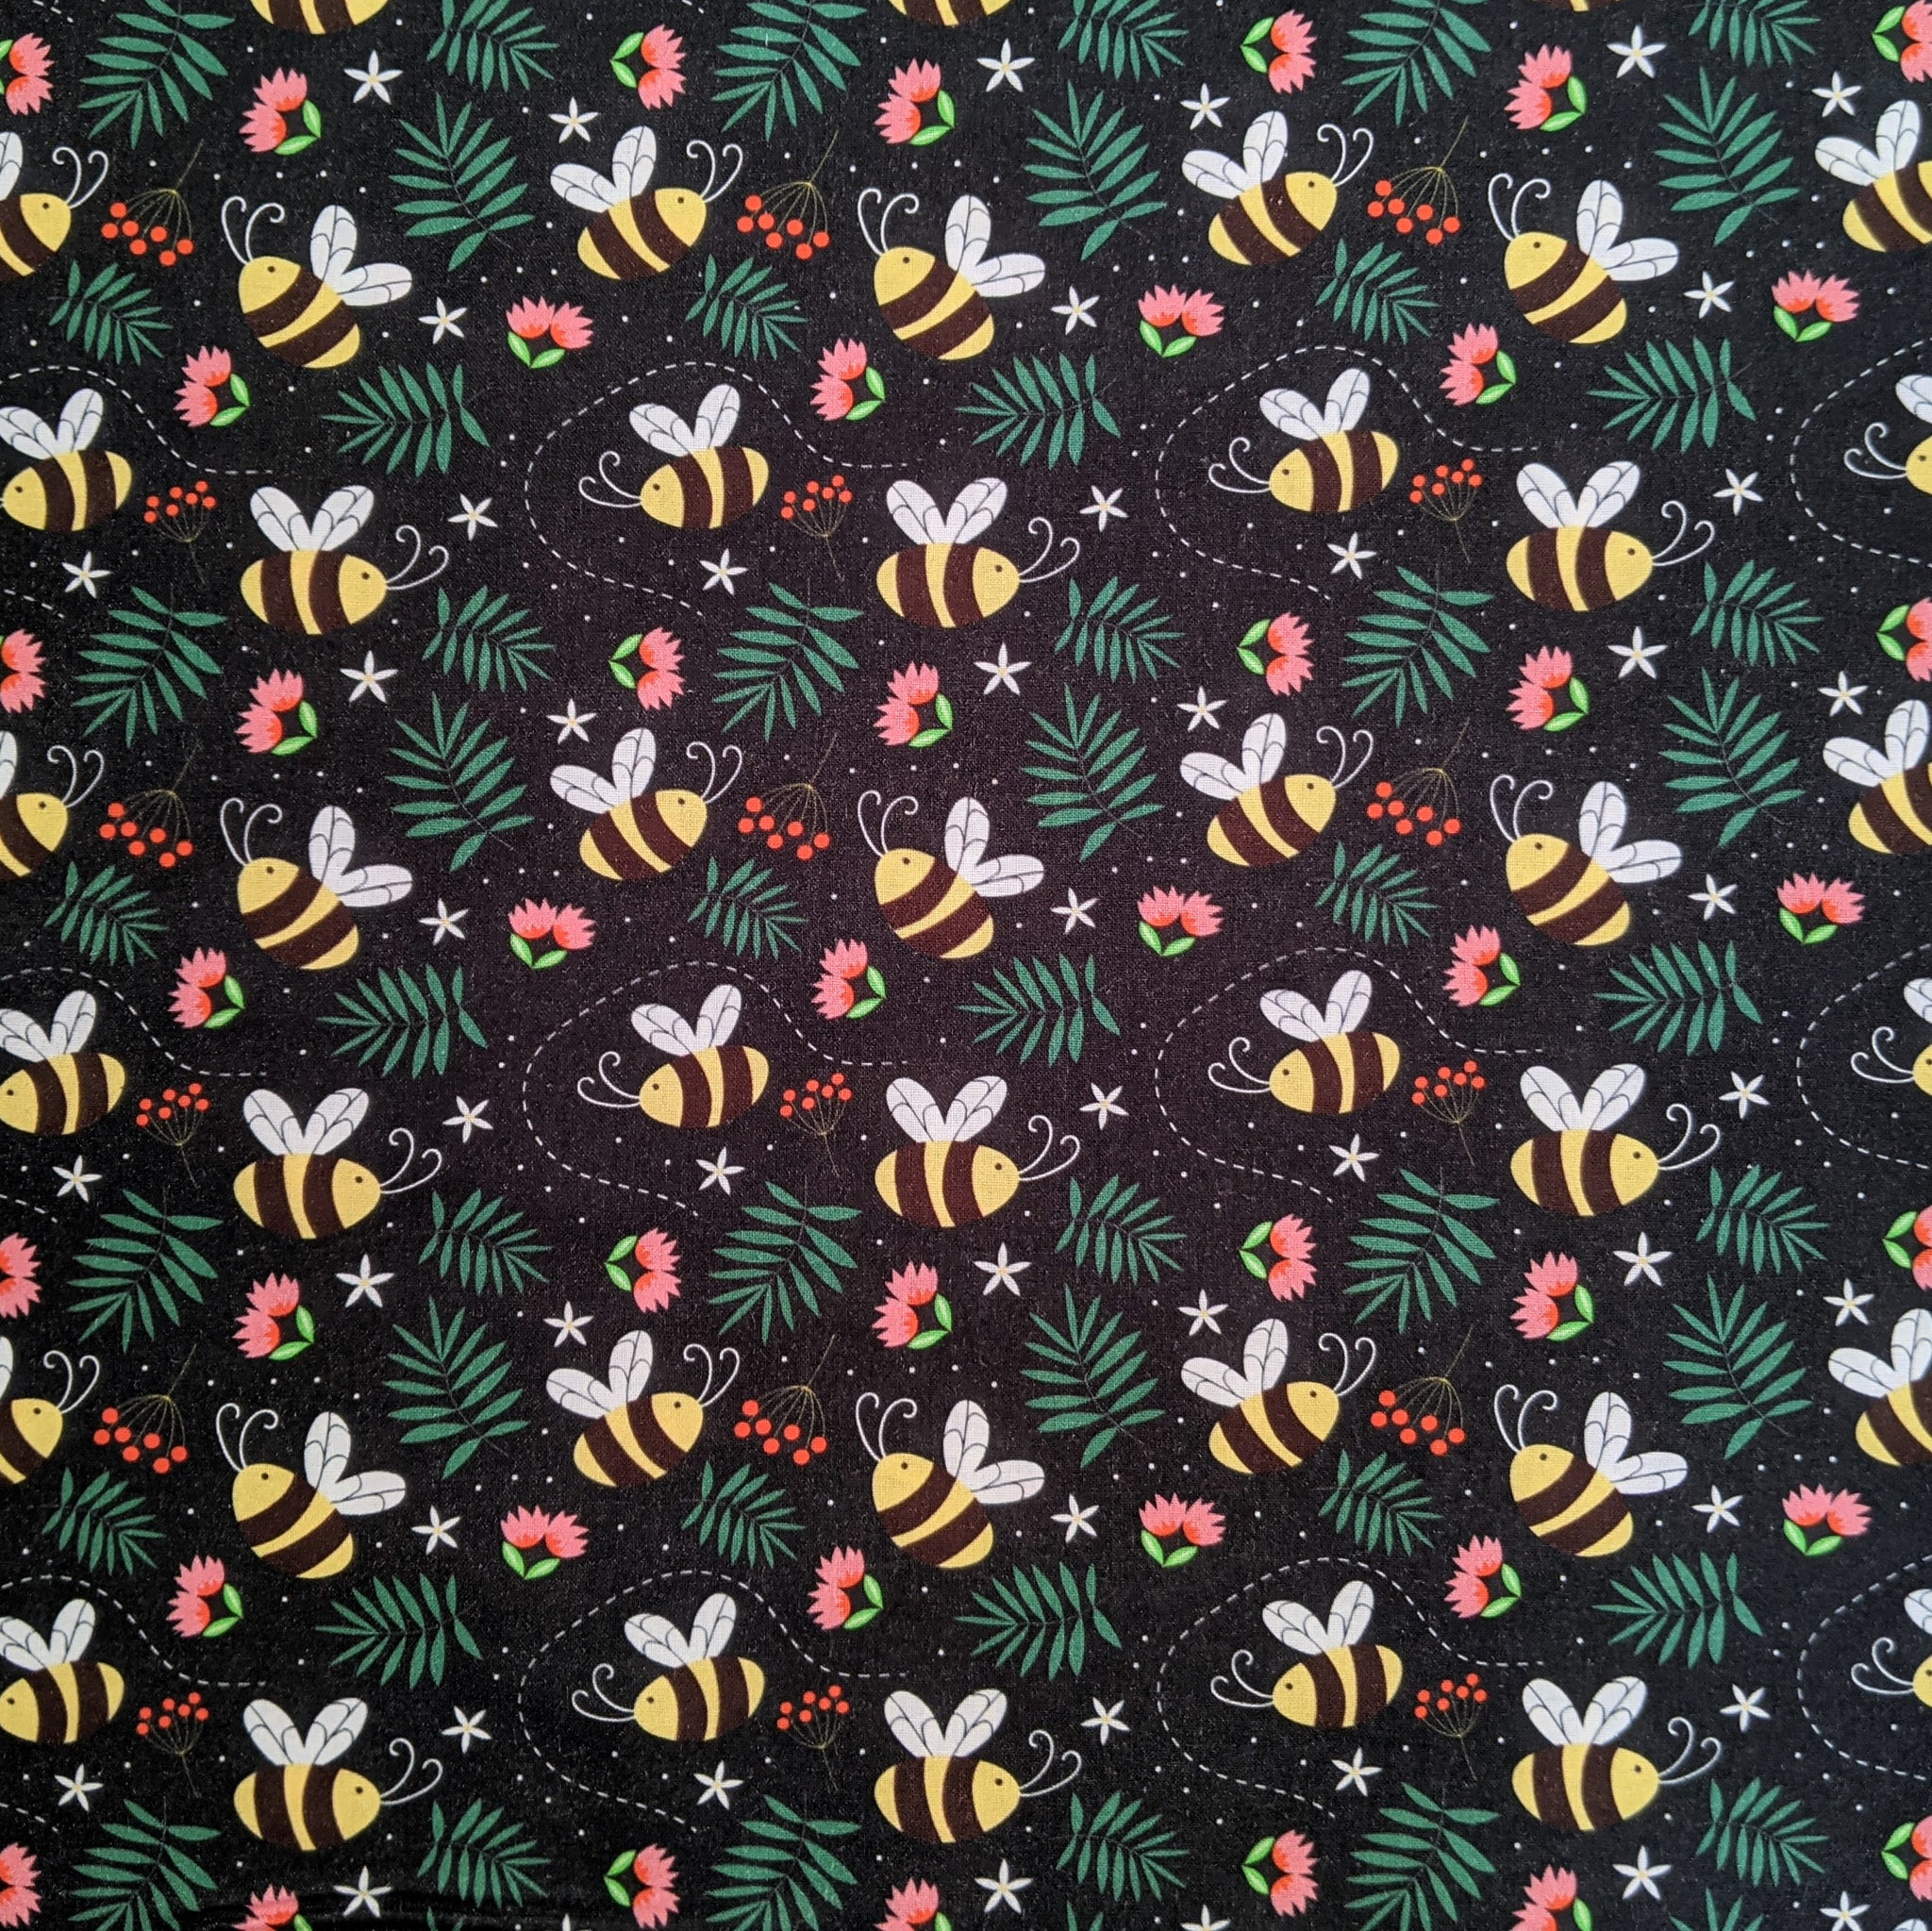 Bees and flowers - 100% cotton - Craft Cotton co - Buzzy Bees